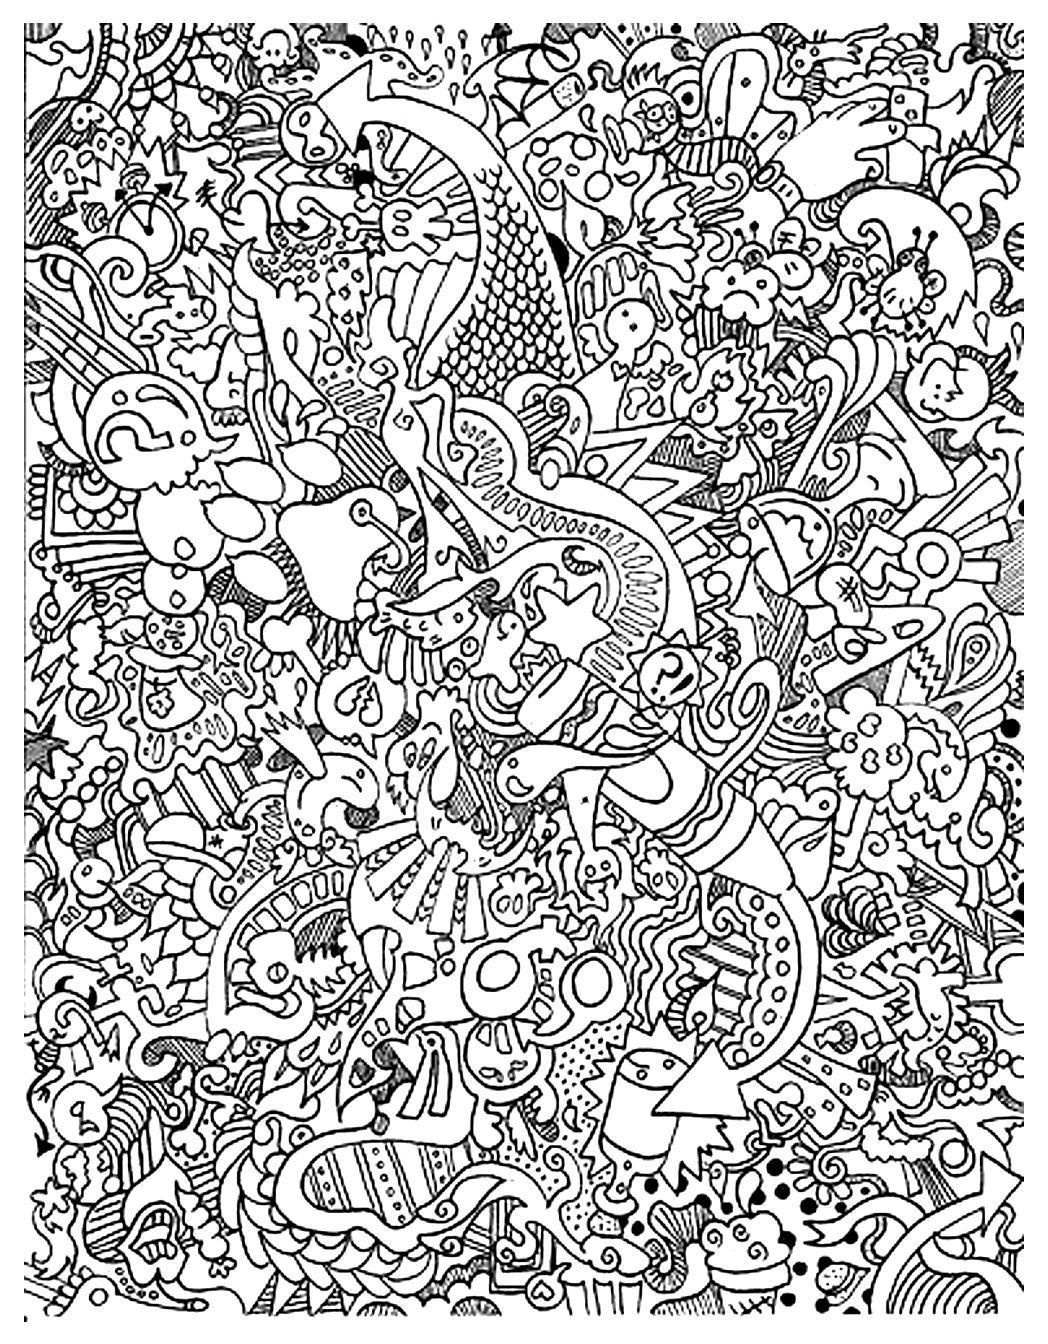 Free Coloring Page Coloring-Doodle-Art-Doodling-15. Funny Doodle Art - Free Printable Doodle Art Coloring Pages